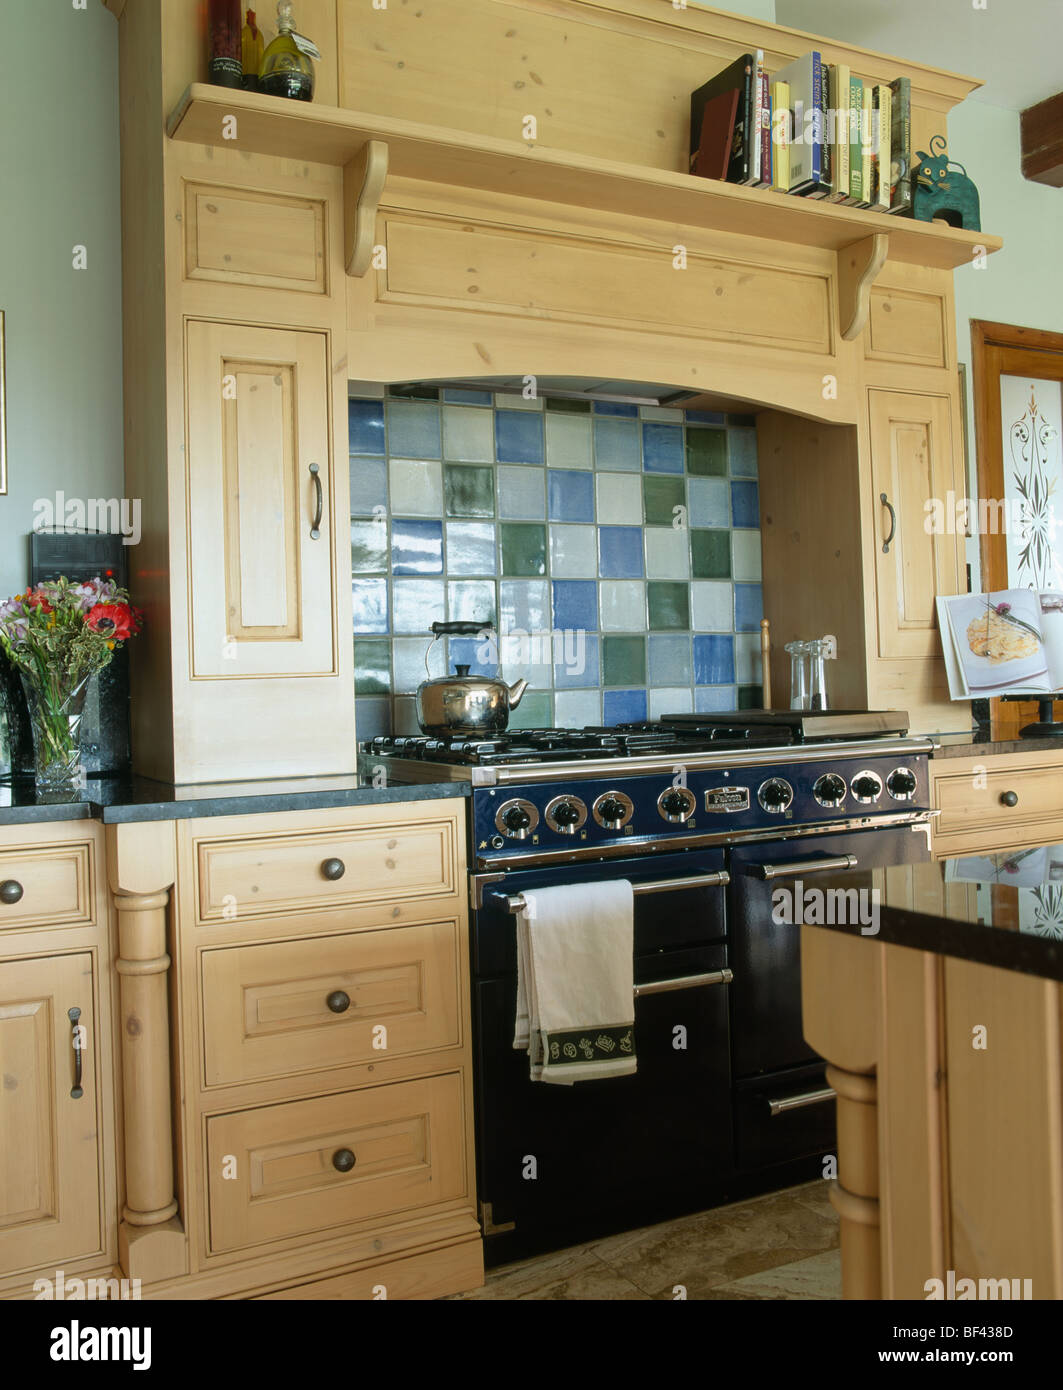 Green country kitchen -  Blue Green And Cream Ceramic Tiles Above Black Range Oven In Traditional Country Kitchen